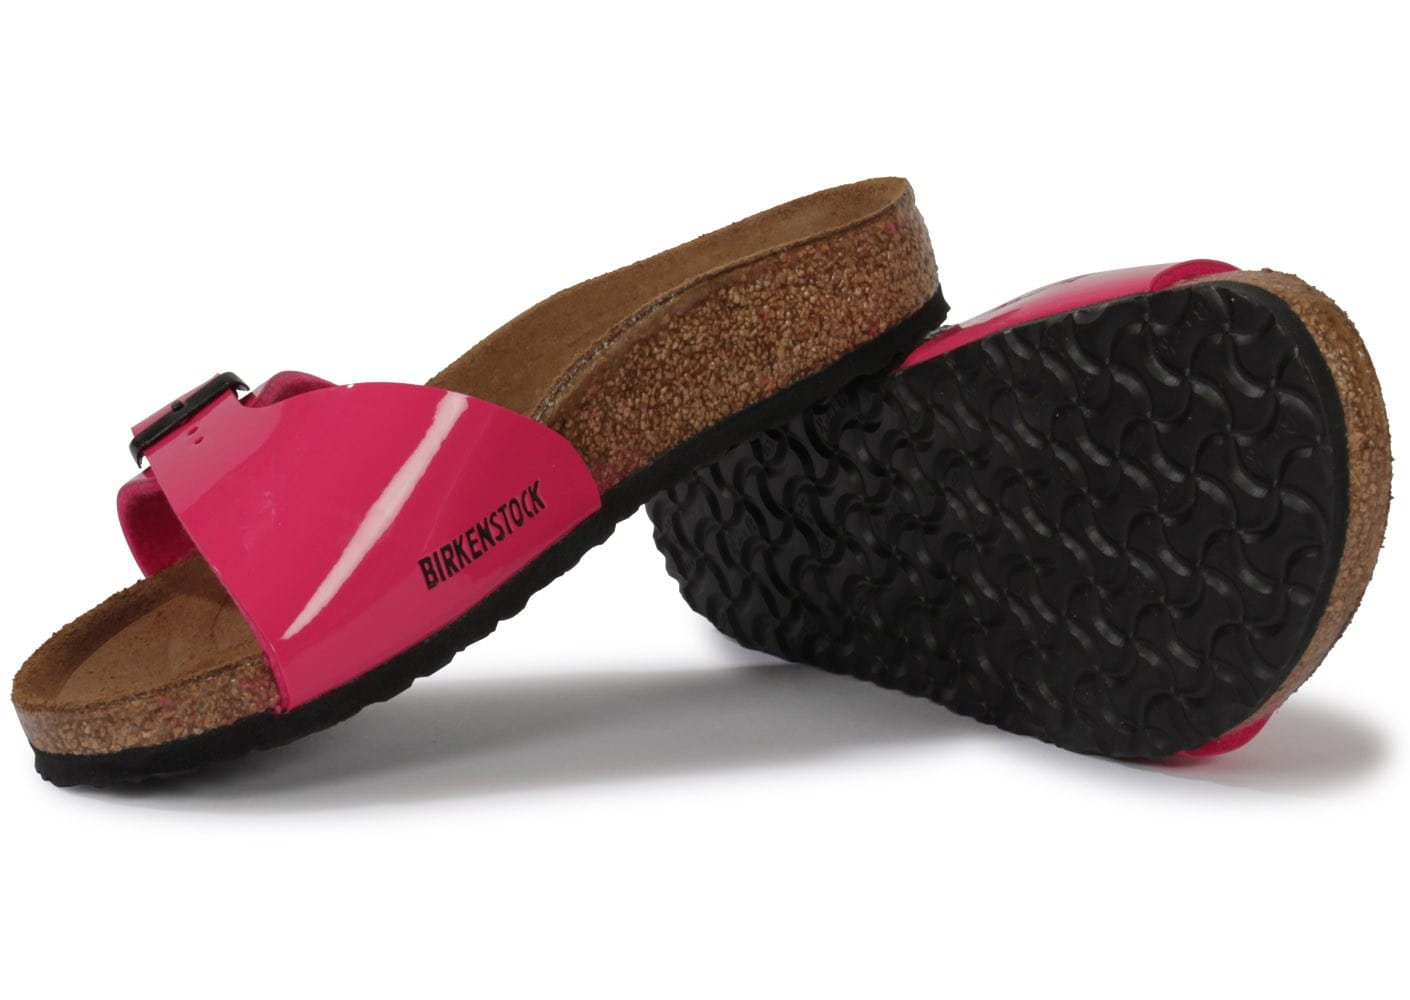 Chaussures Soldes Soldes Chaussures Birkenstock Birkenstock Chaussures Soldes Birkenstock Soldes Chaussures Birkenstock PXZkui